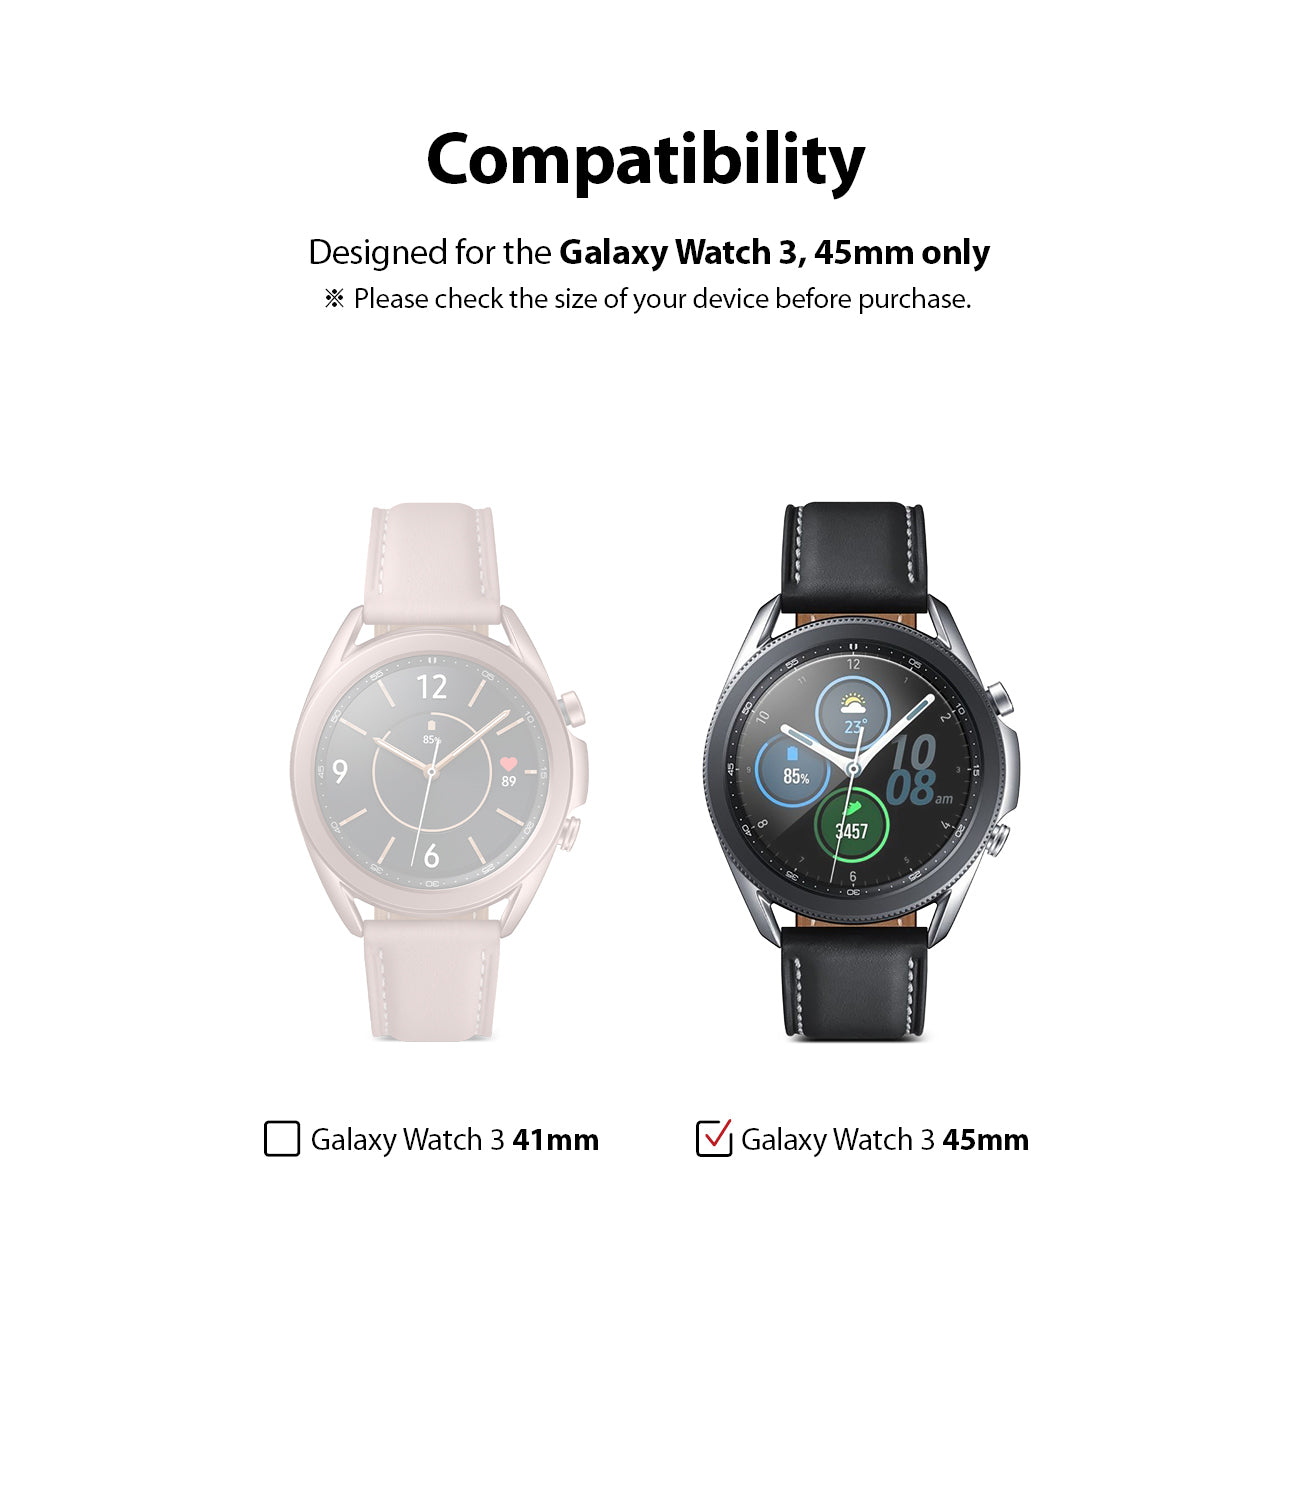 compatible with galaxy watch 3 45mm only